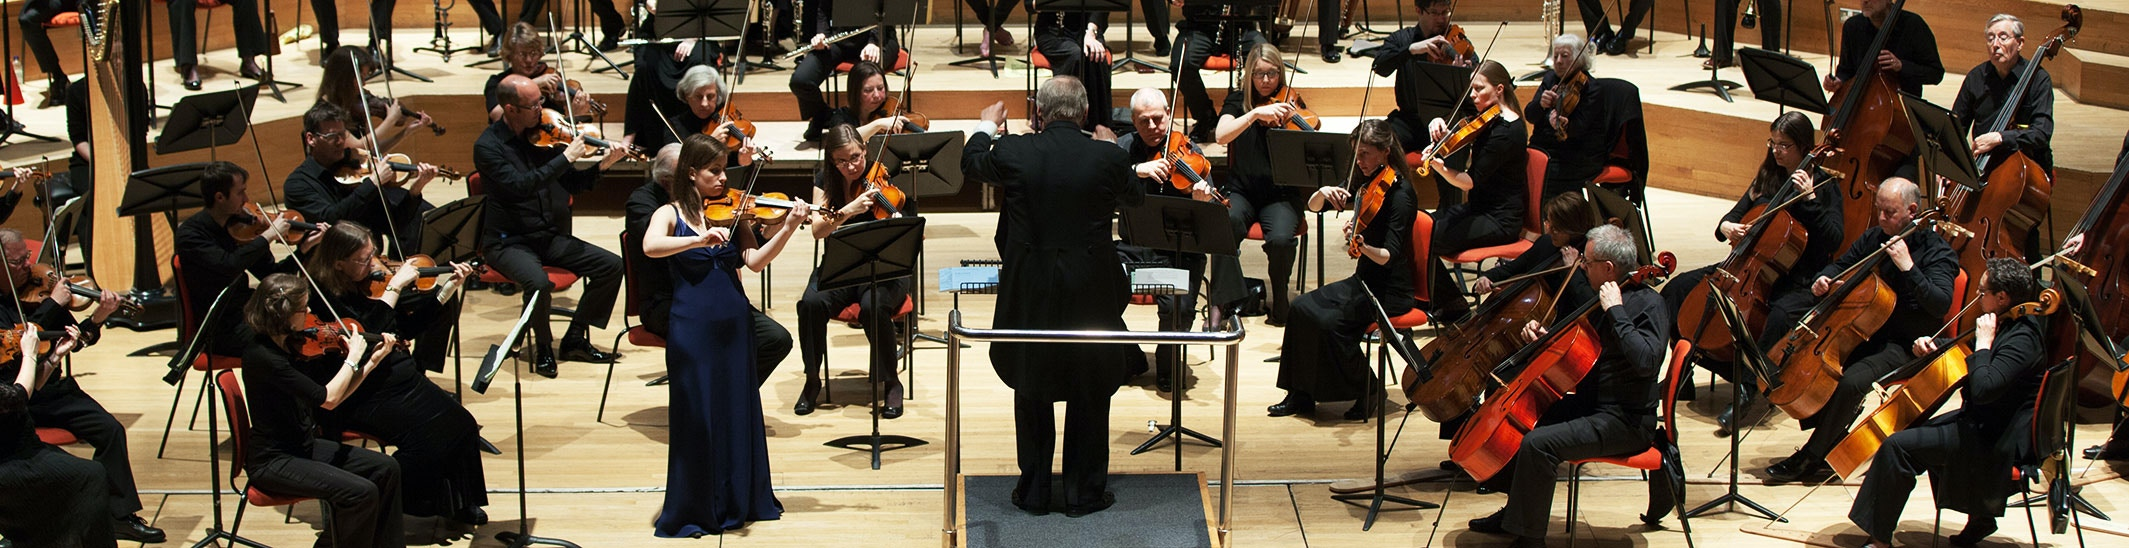 Conservatoire - Concerts and Events - BPO